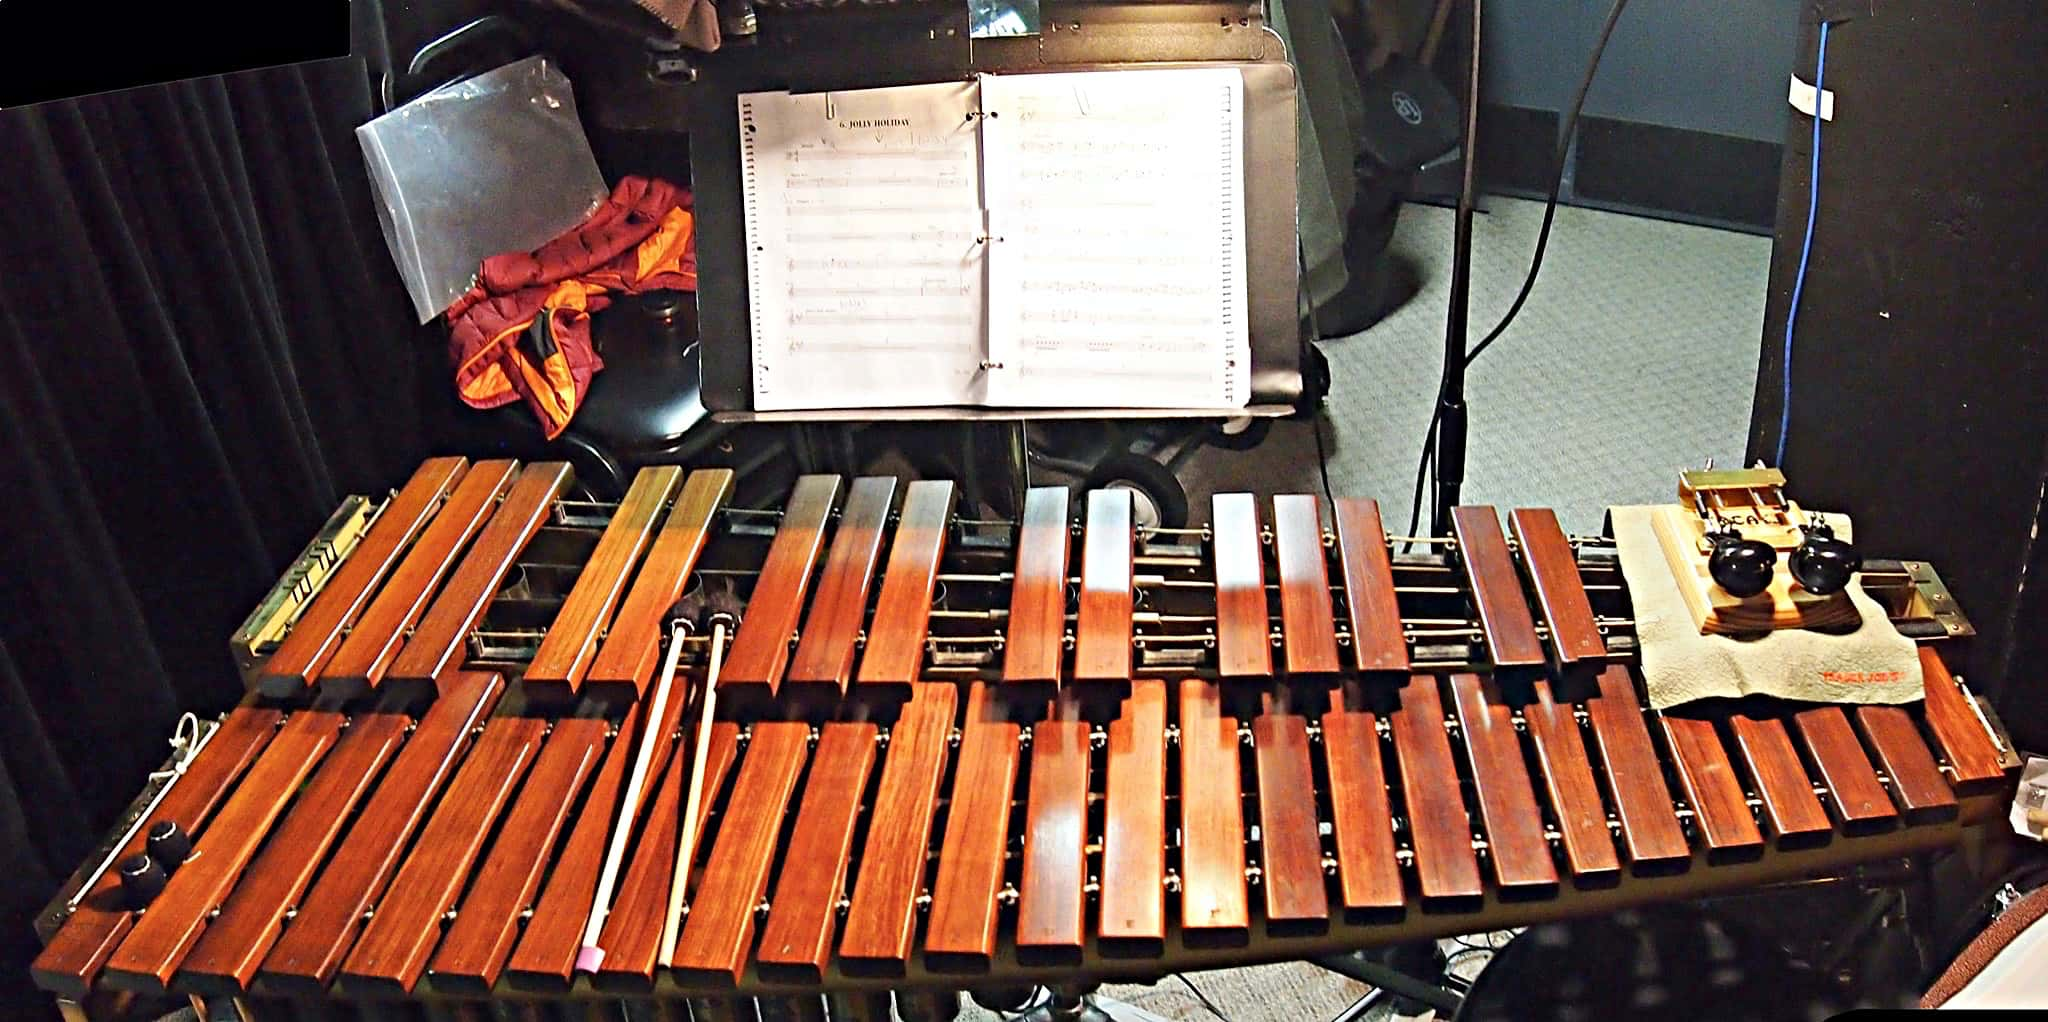 Alec Wilmart's percussion setup for Mary Poppins at the Village Theatre in Everett, Washington.